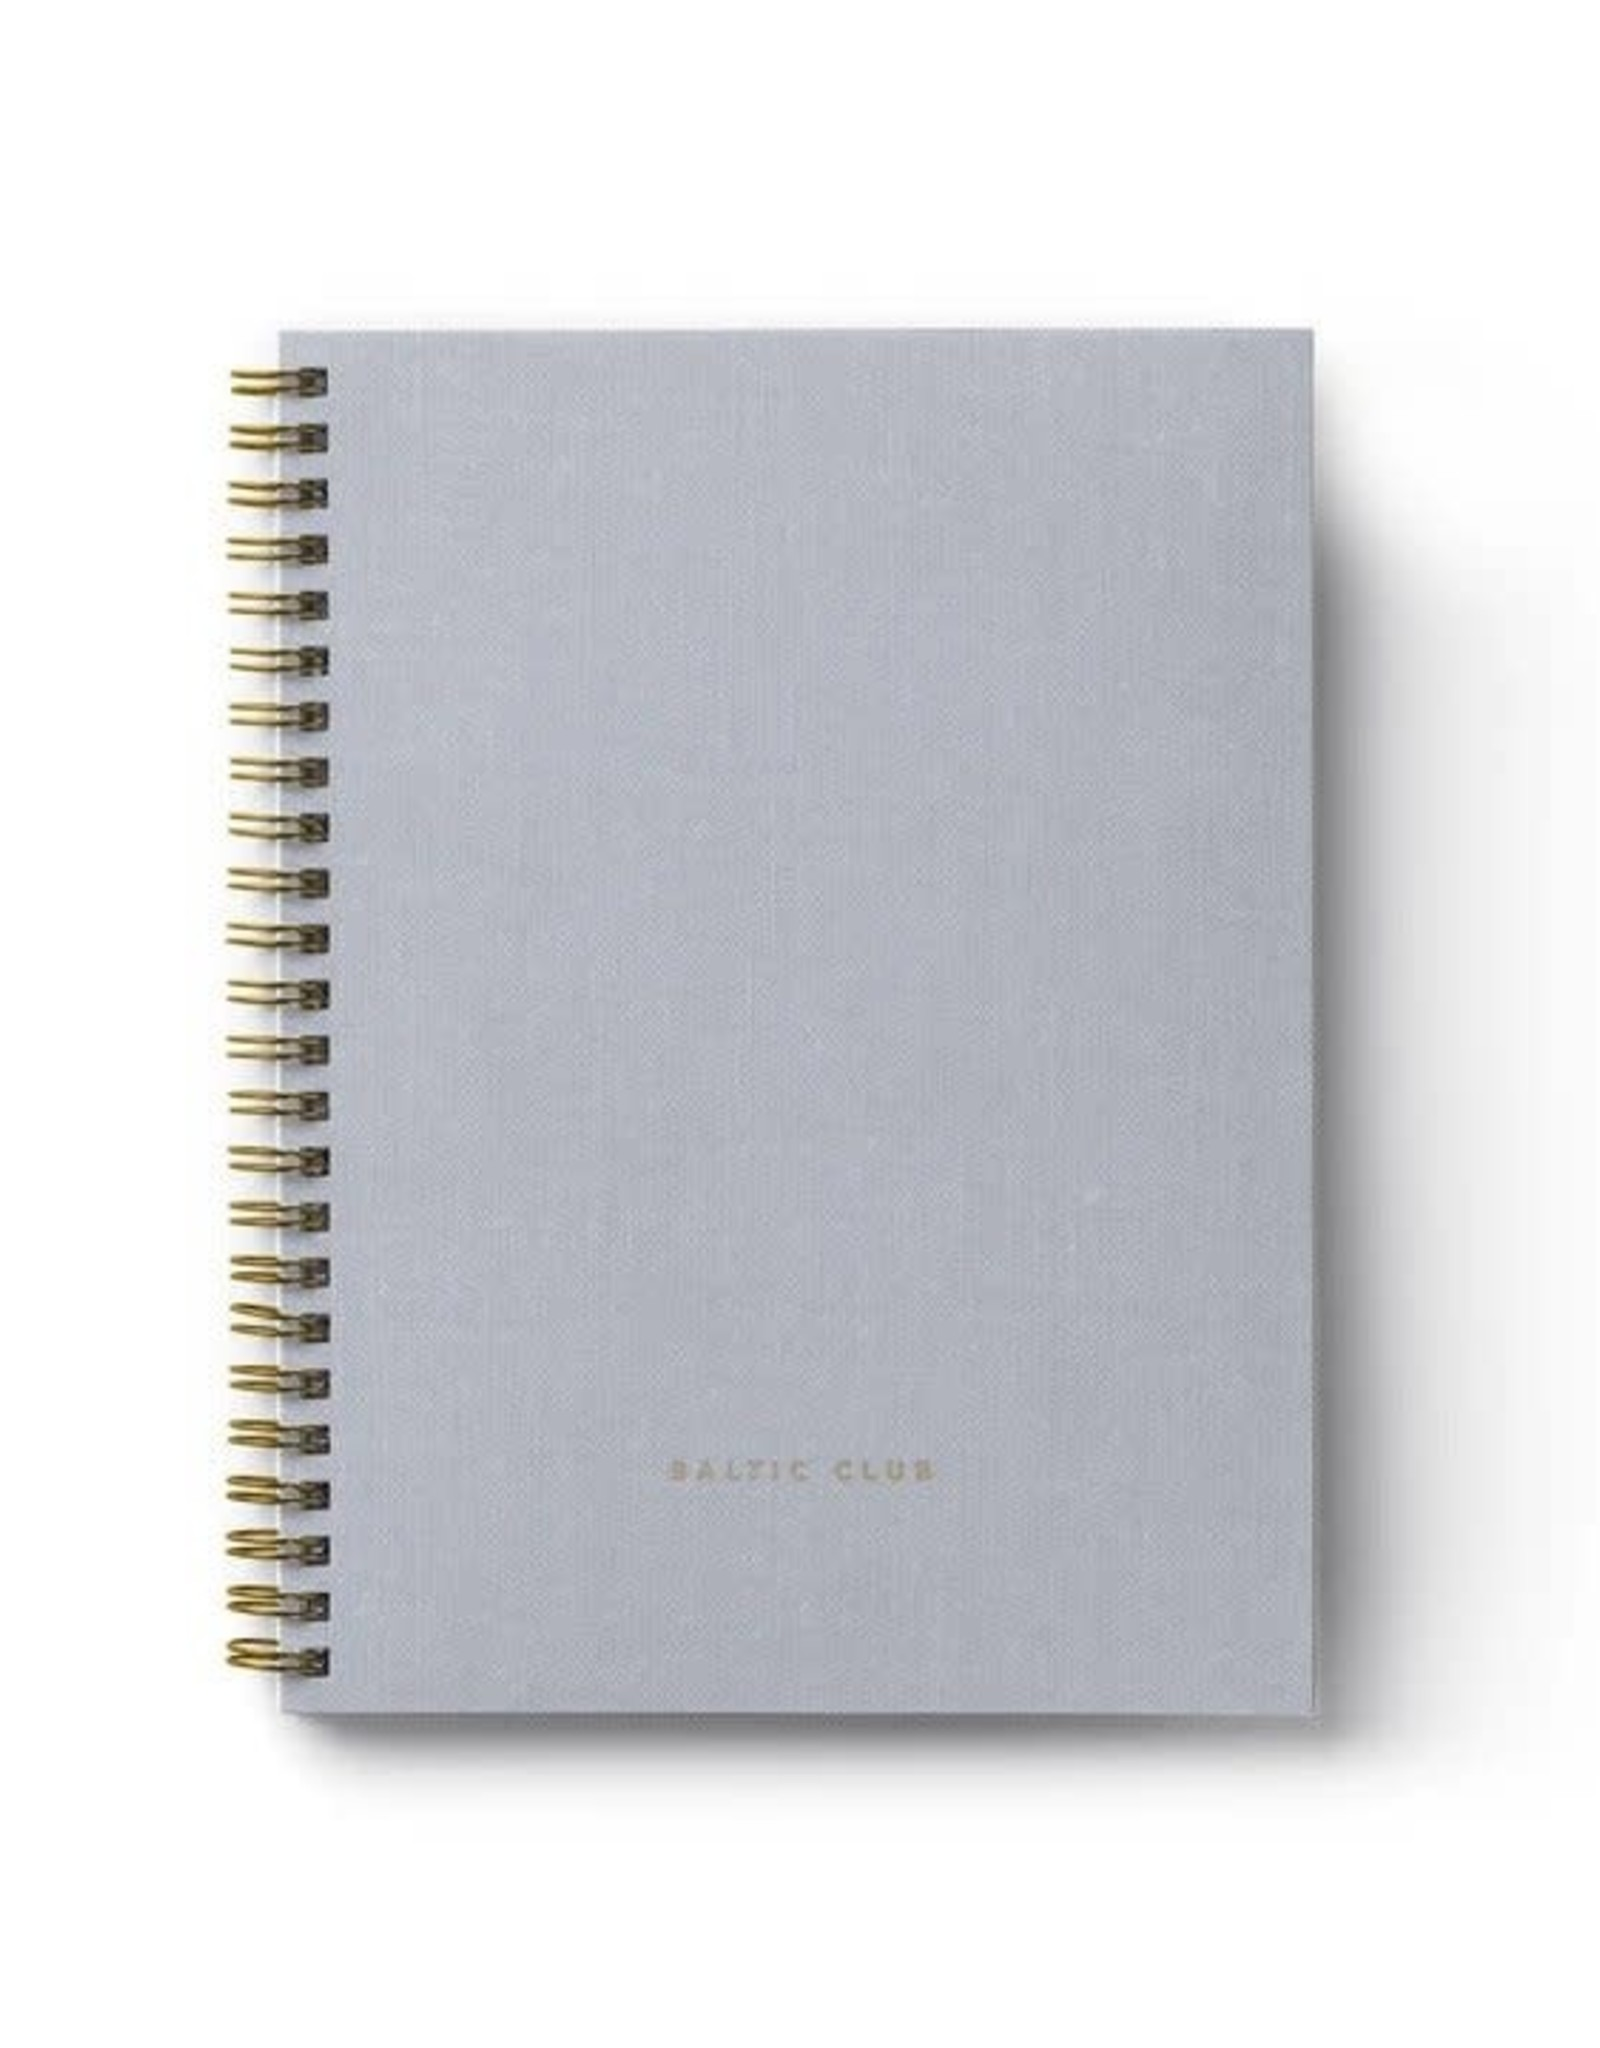 Baltic Club Cloth Spiral Notebook - Lined